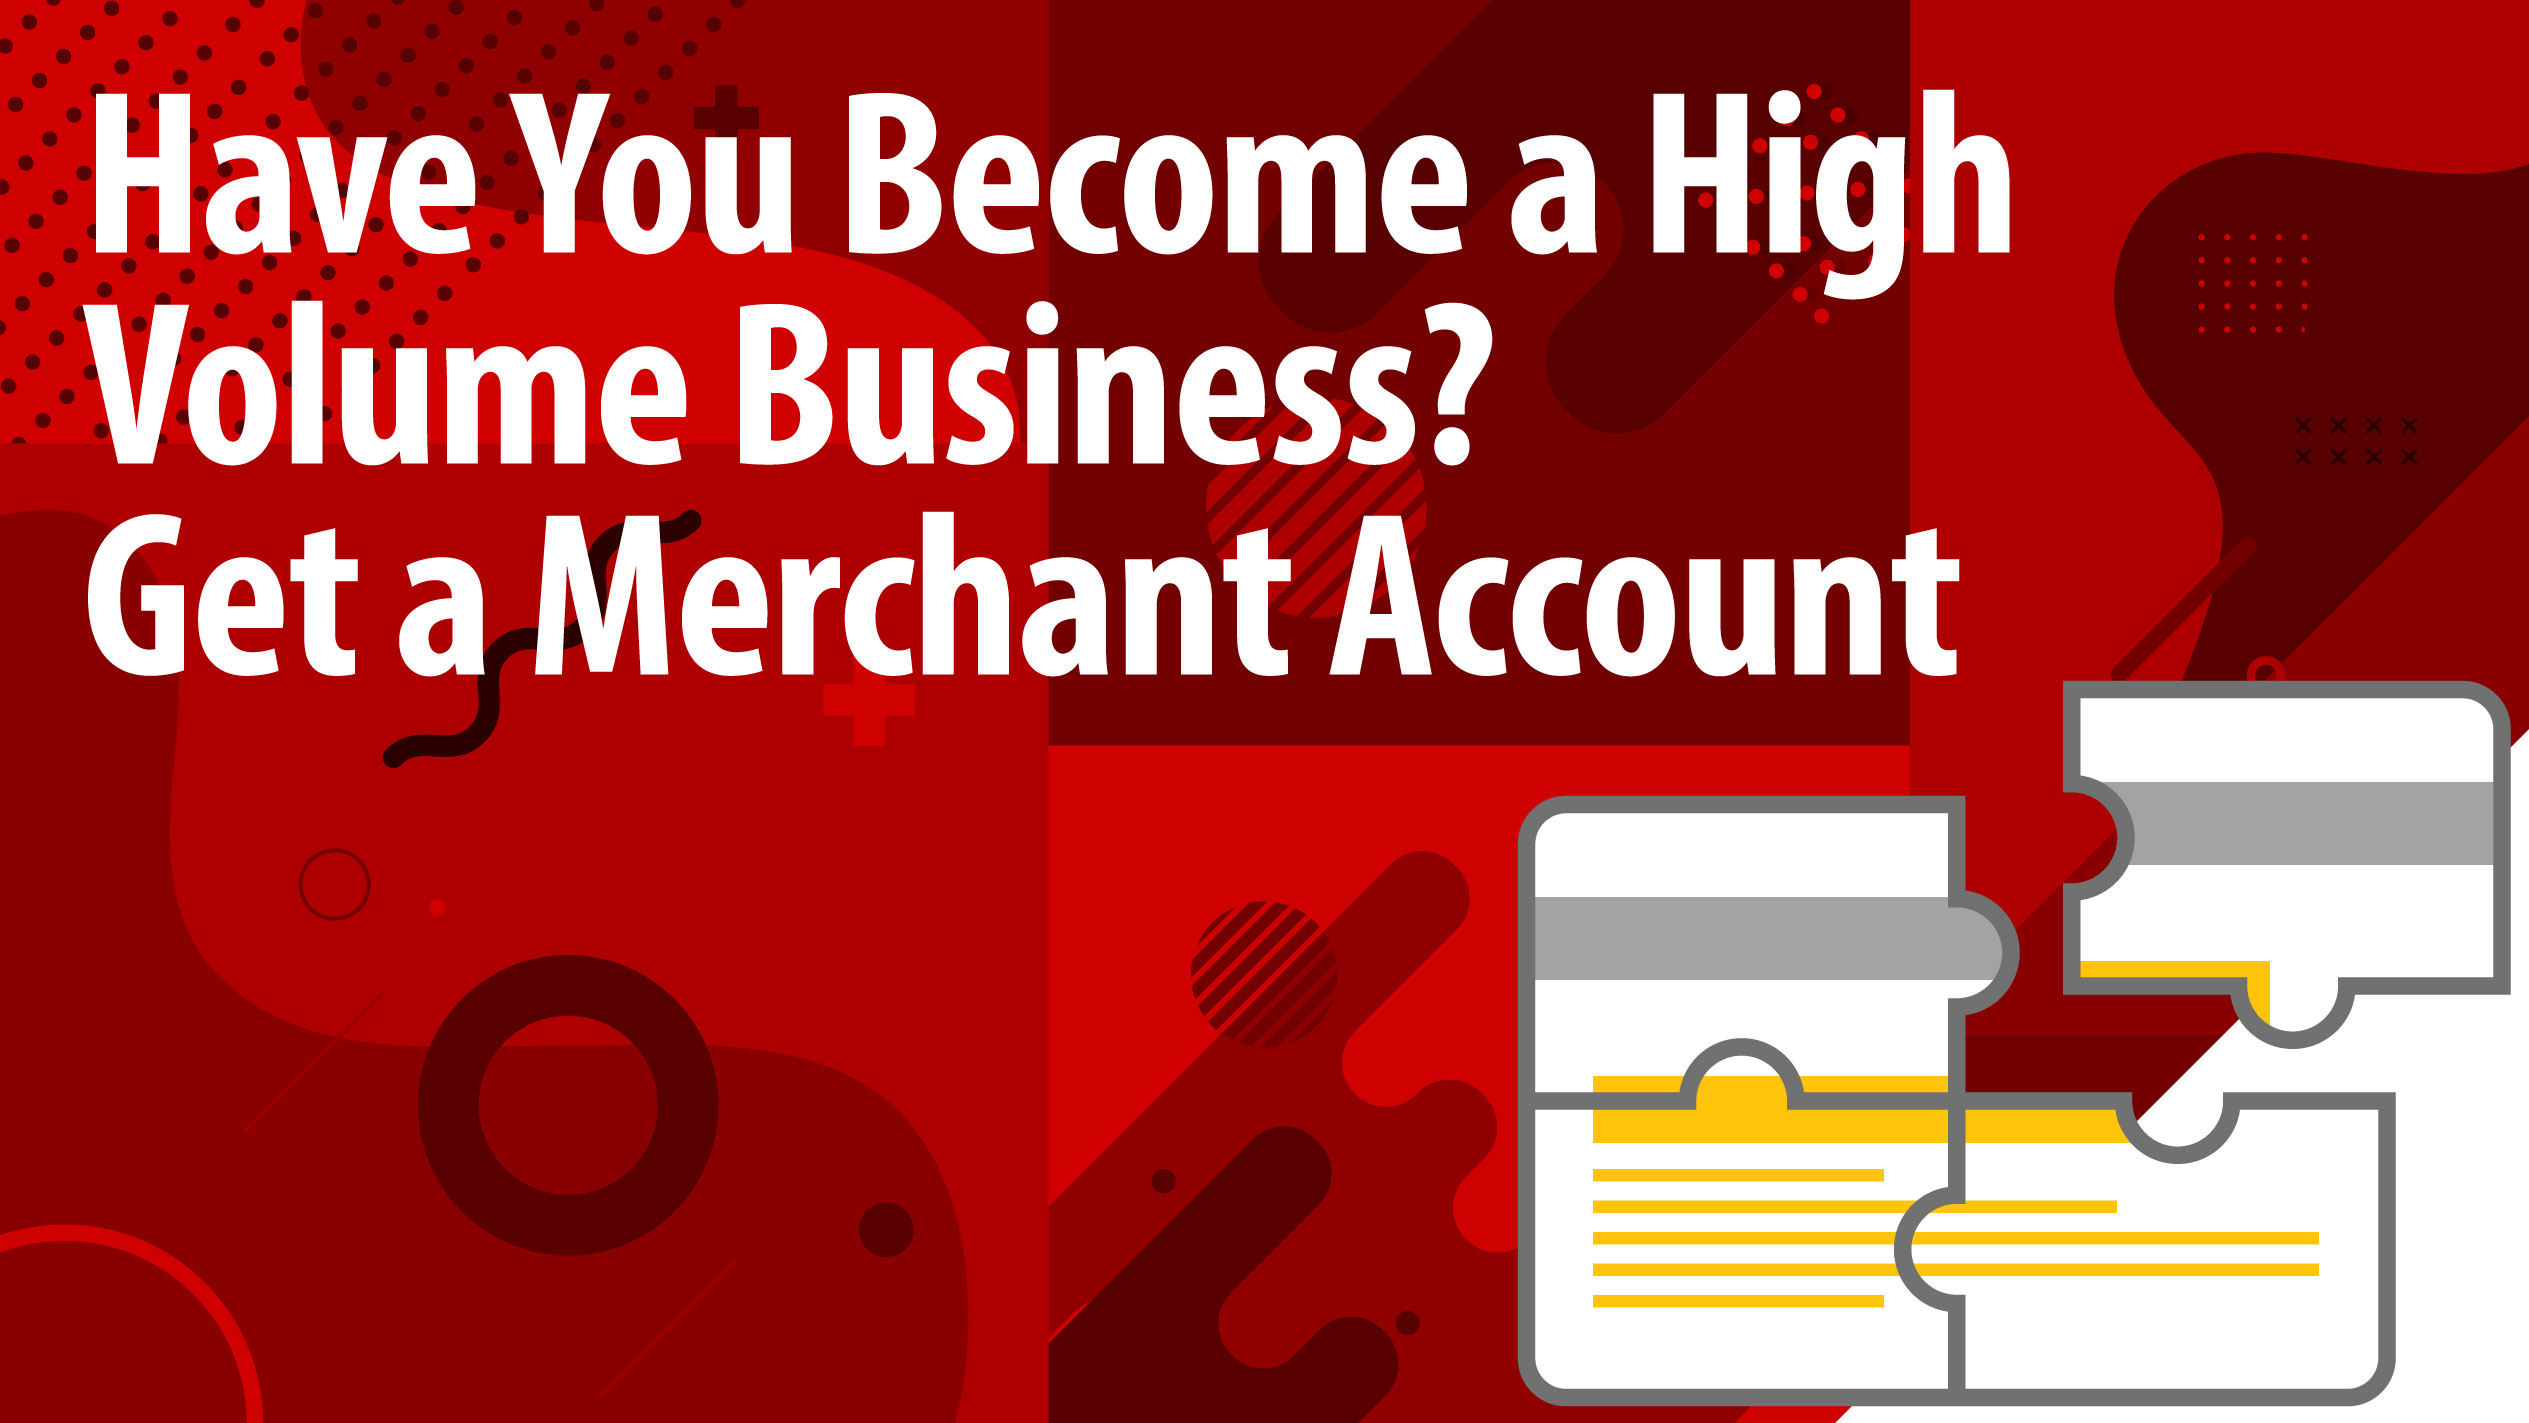 Have You Become a High Volume Business? Get a Merchant Account